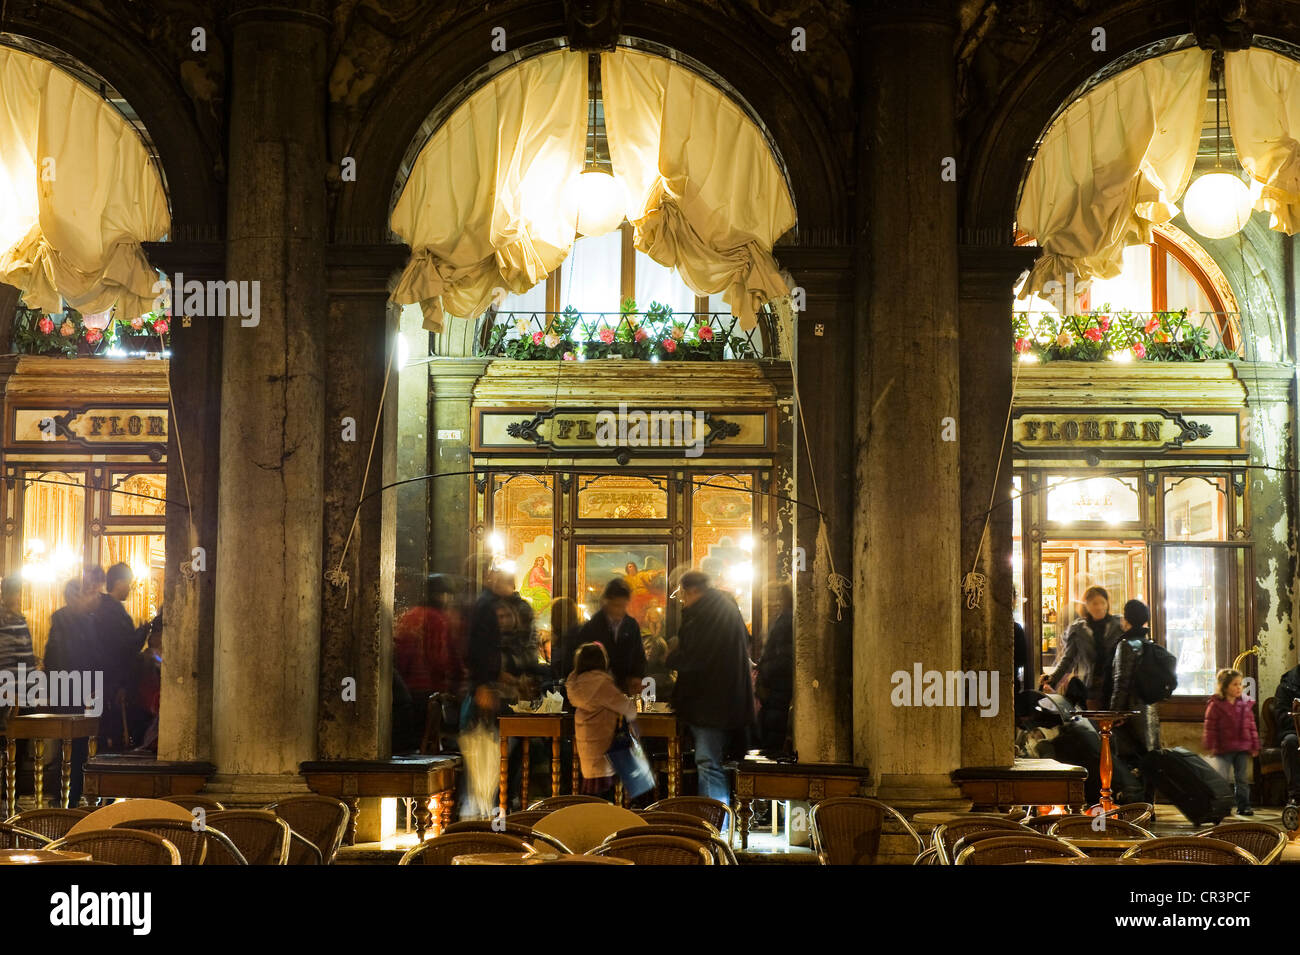 Caffè Florian coffee house on St Mark's Square, Piazza San Marco square, Venice, Italy, Europe - Stock Image